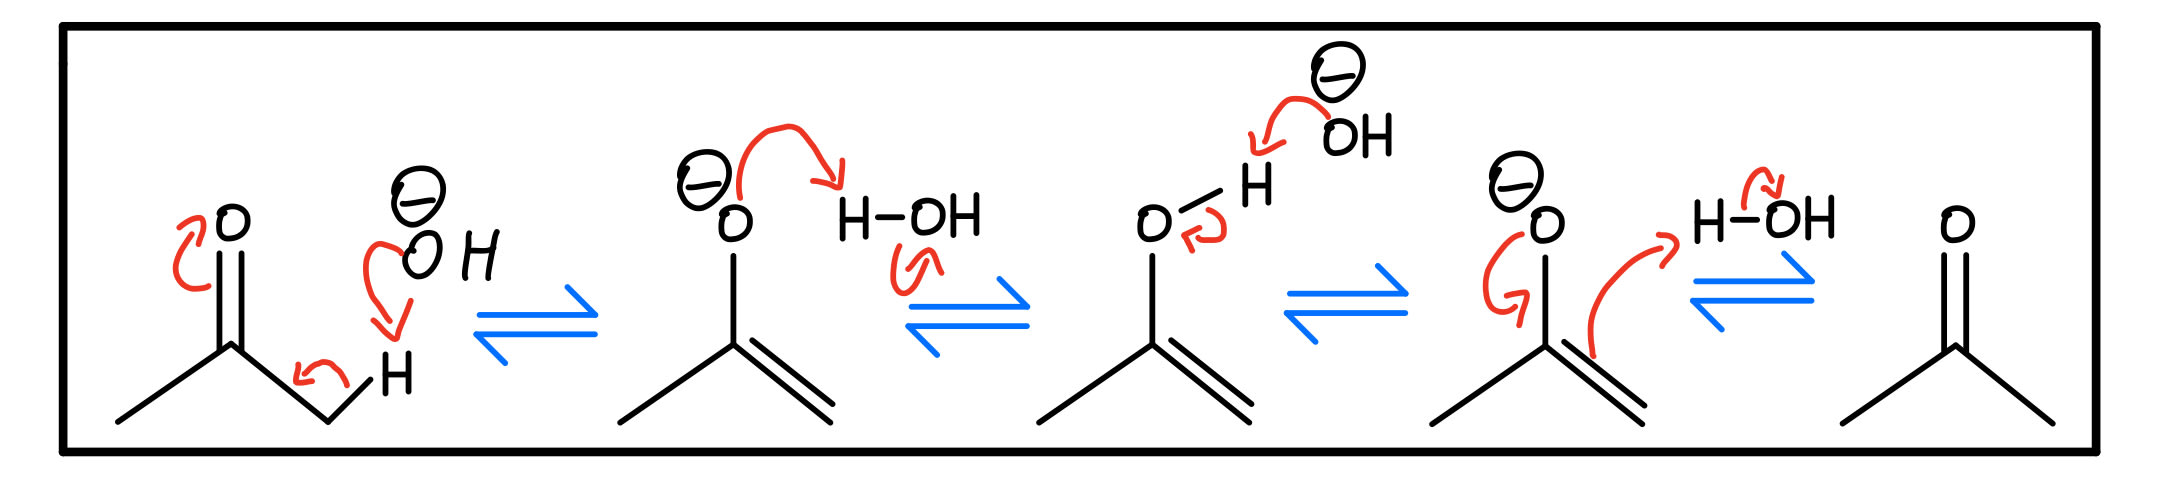 Base-catalyzed mechanism